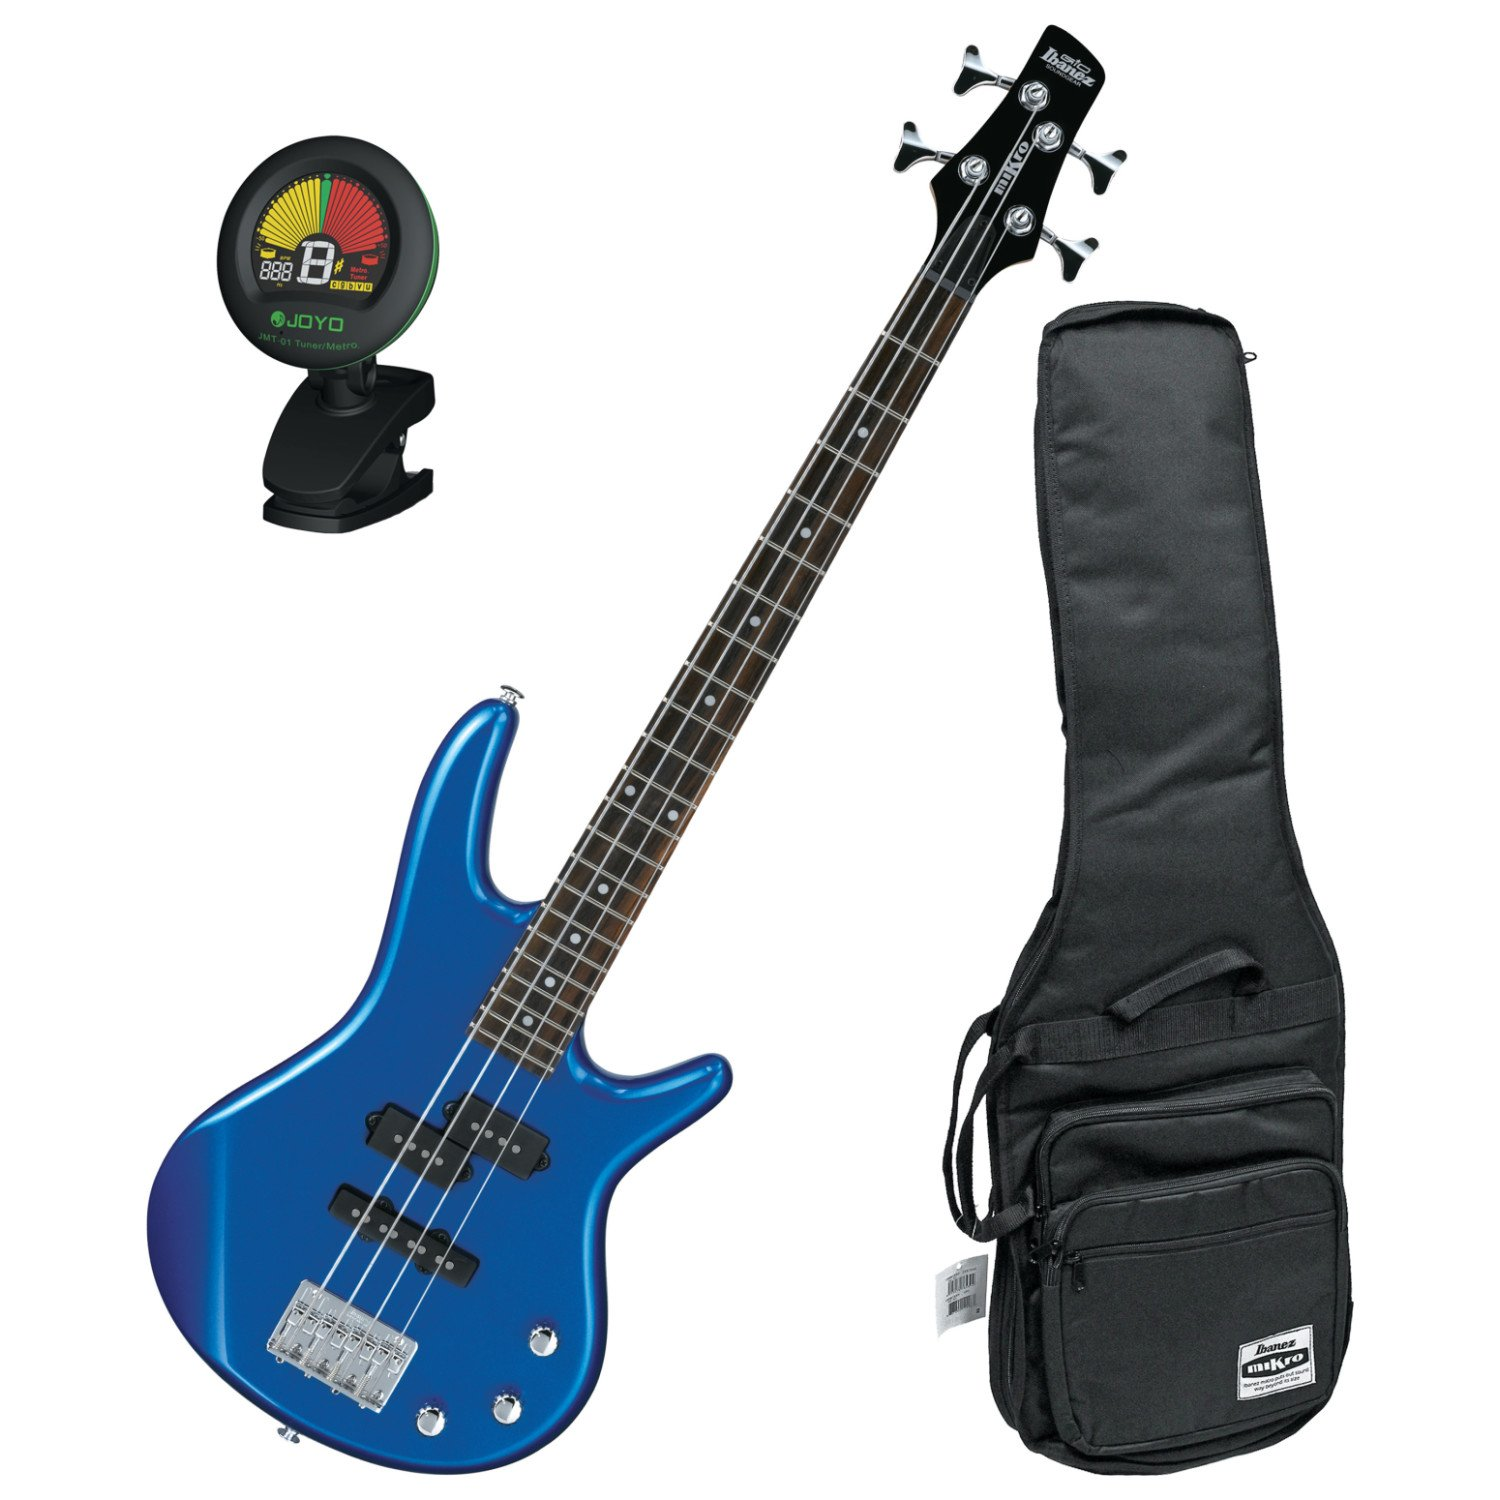 Ibanez GIO GSRM20SLB Mikro Starlight Blue 28.6'' Scale 4 String Bass Guitar w/ Gig Bag and Tuner!